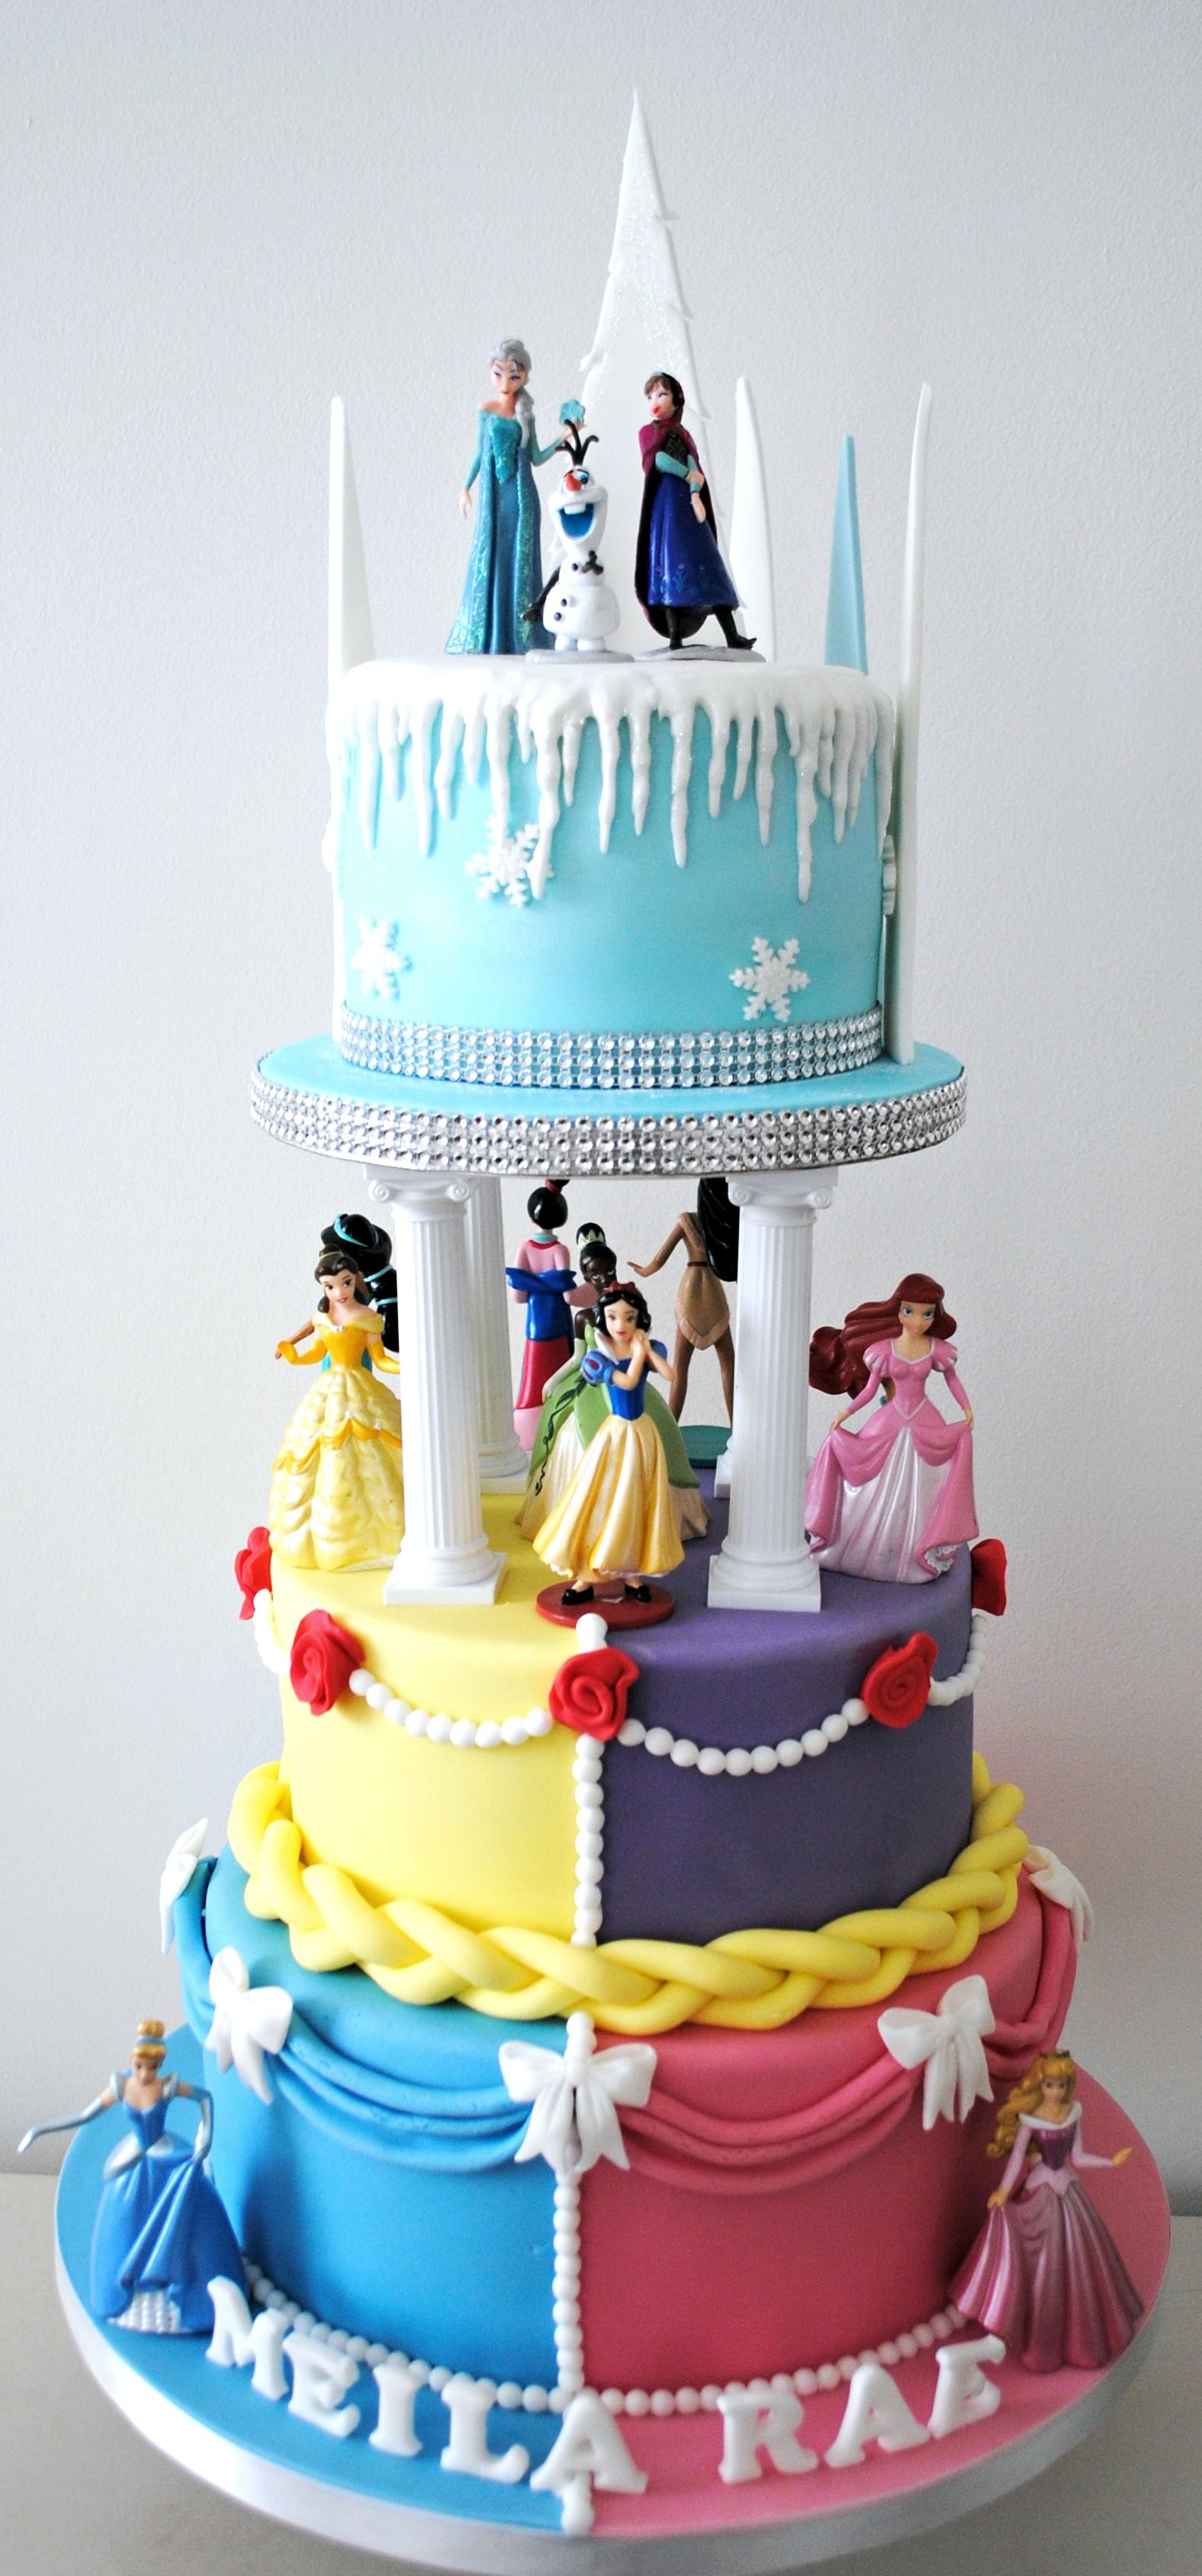 Disney Princess 3 Tiered Birthday Cake Cake and Cupcake